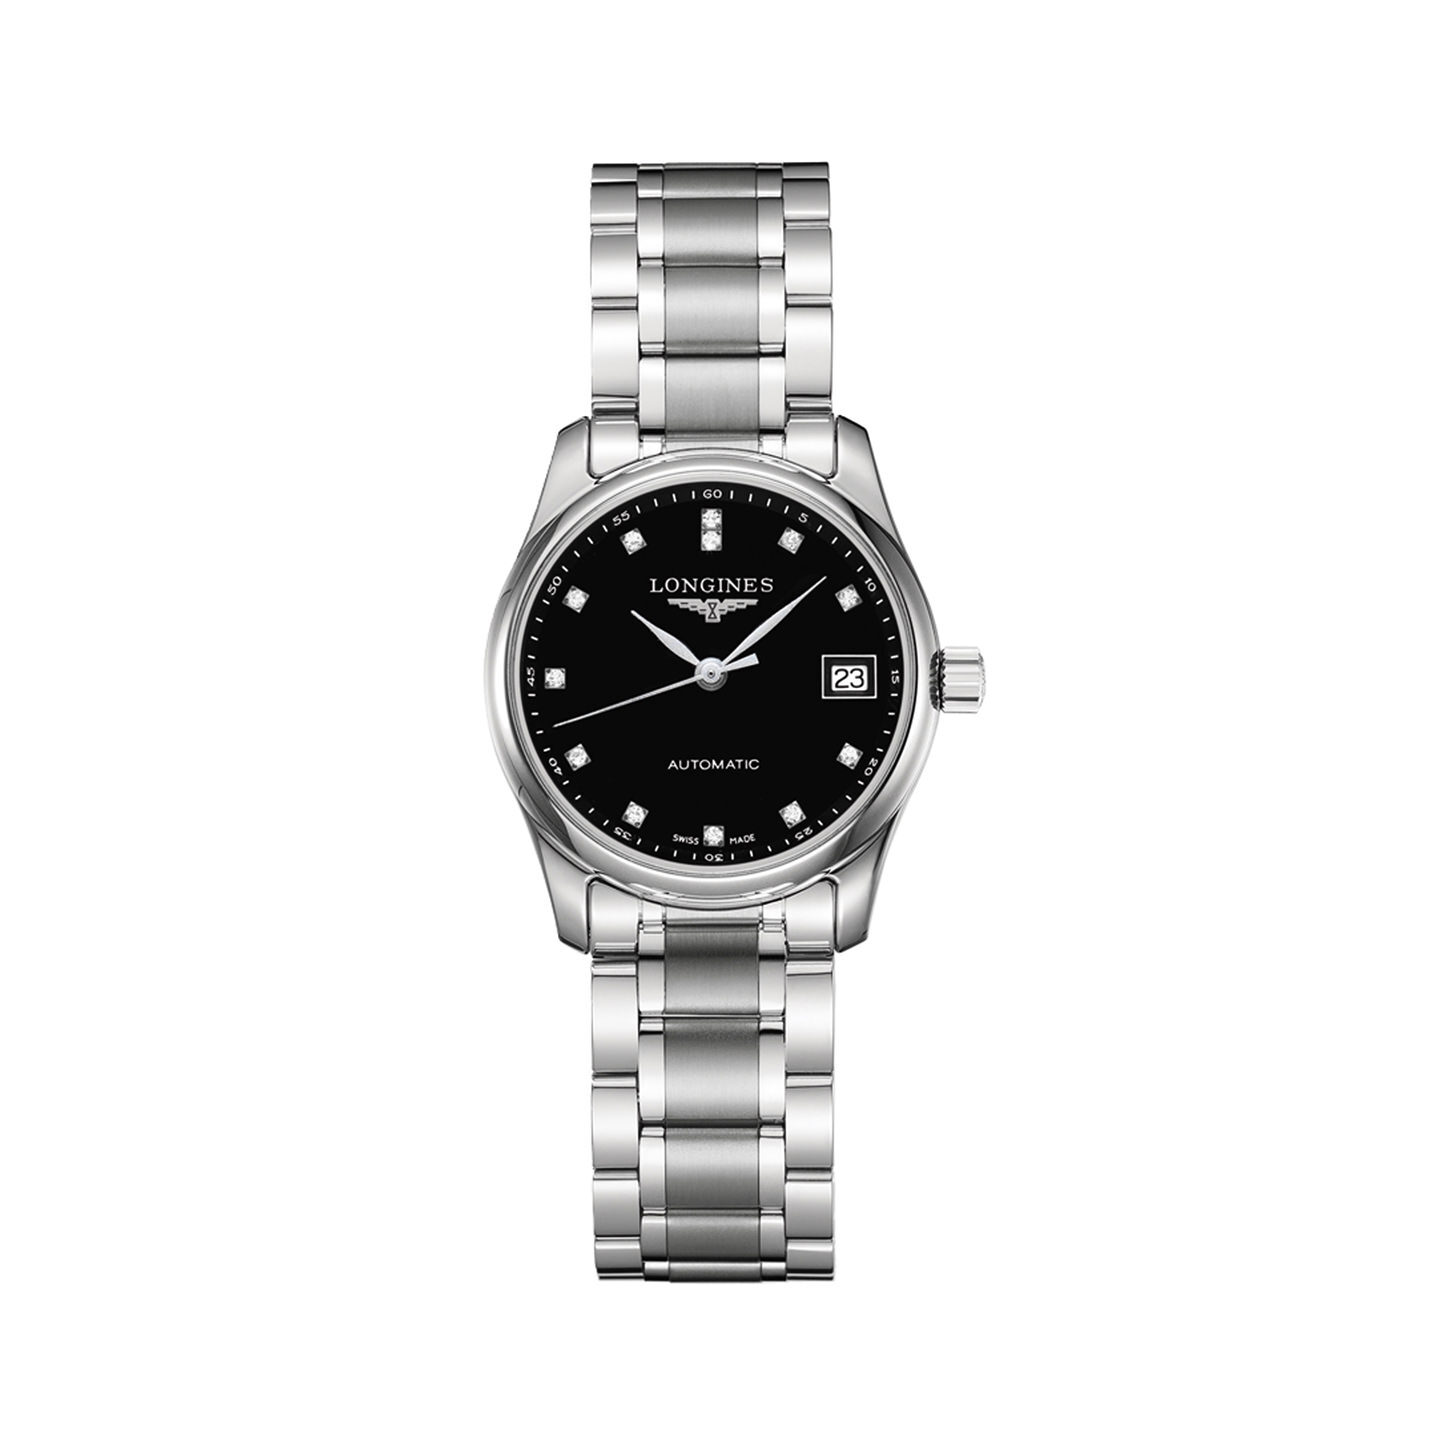 Longines Master Collection – Automatic Stainless Steel Watch